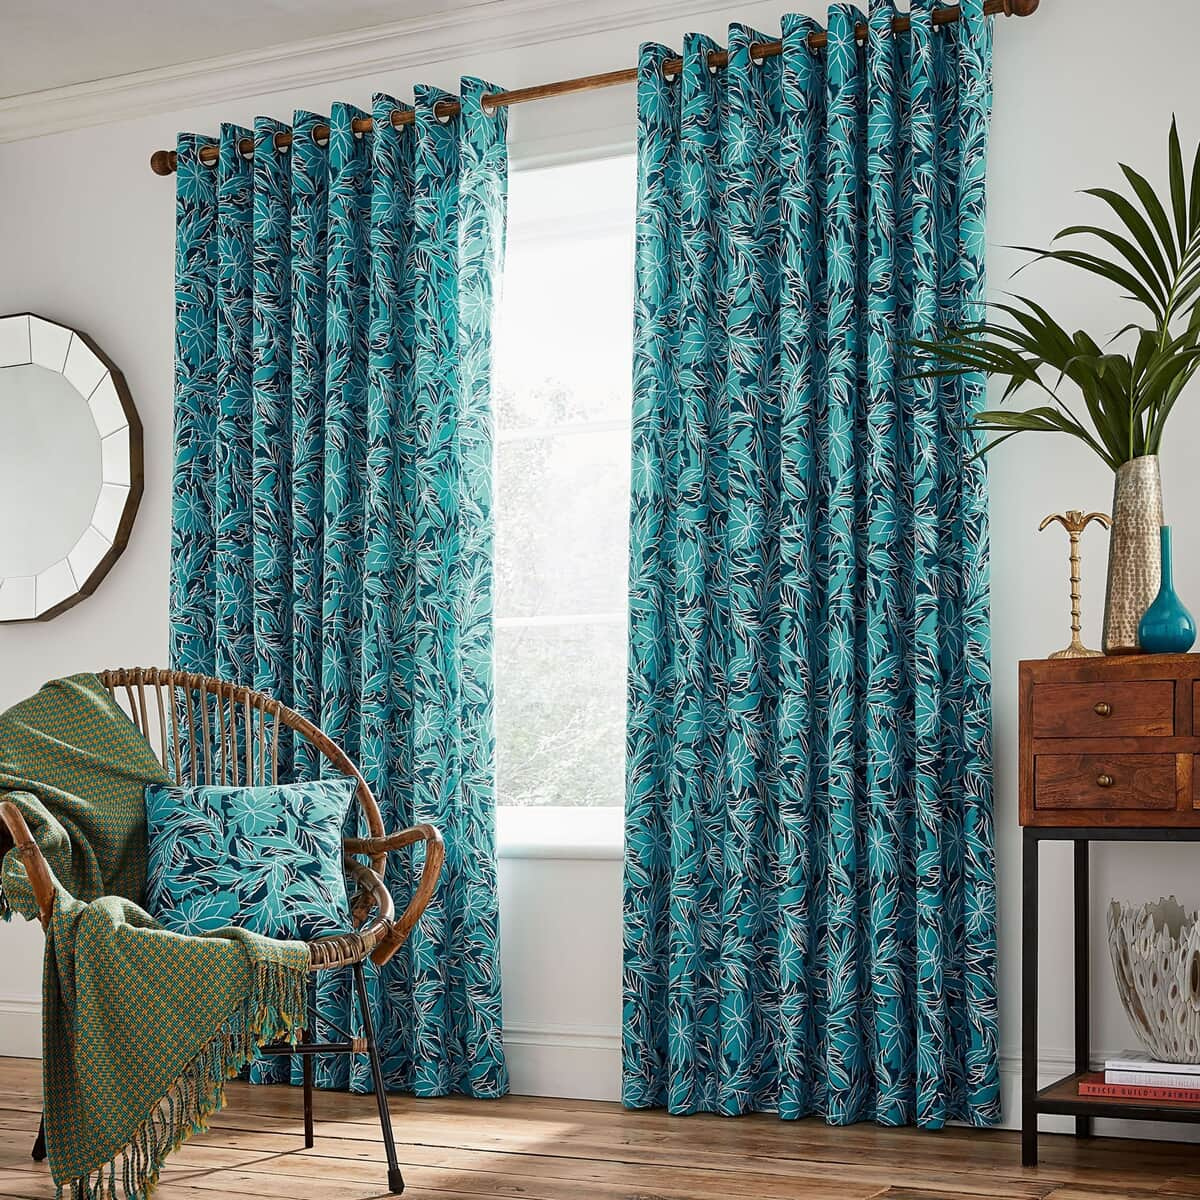 Helena Springfield Oasis Oceanic Curtains large